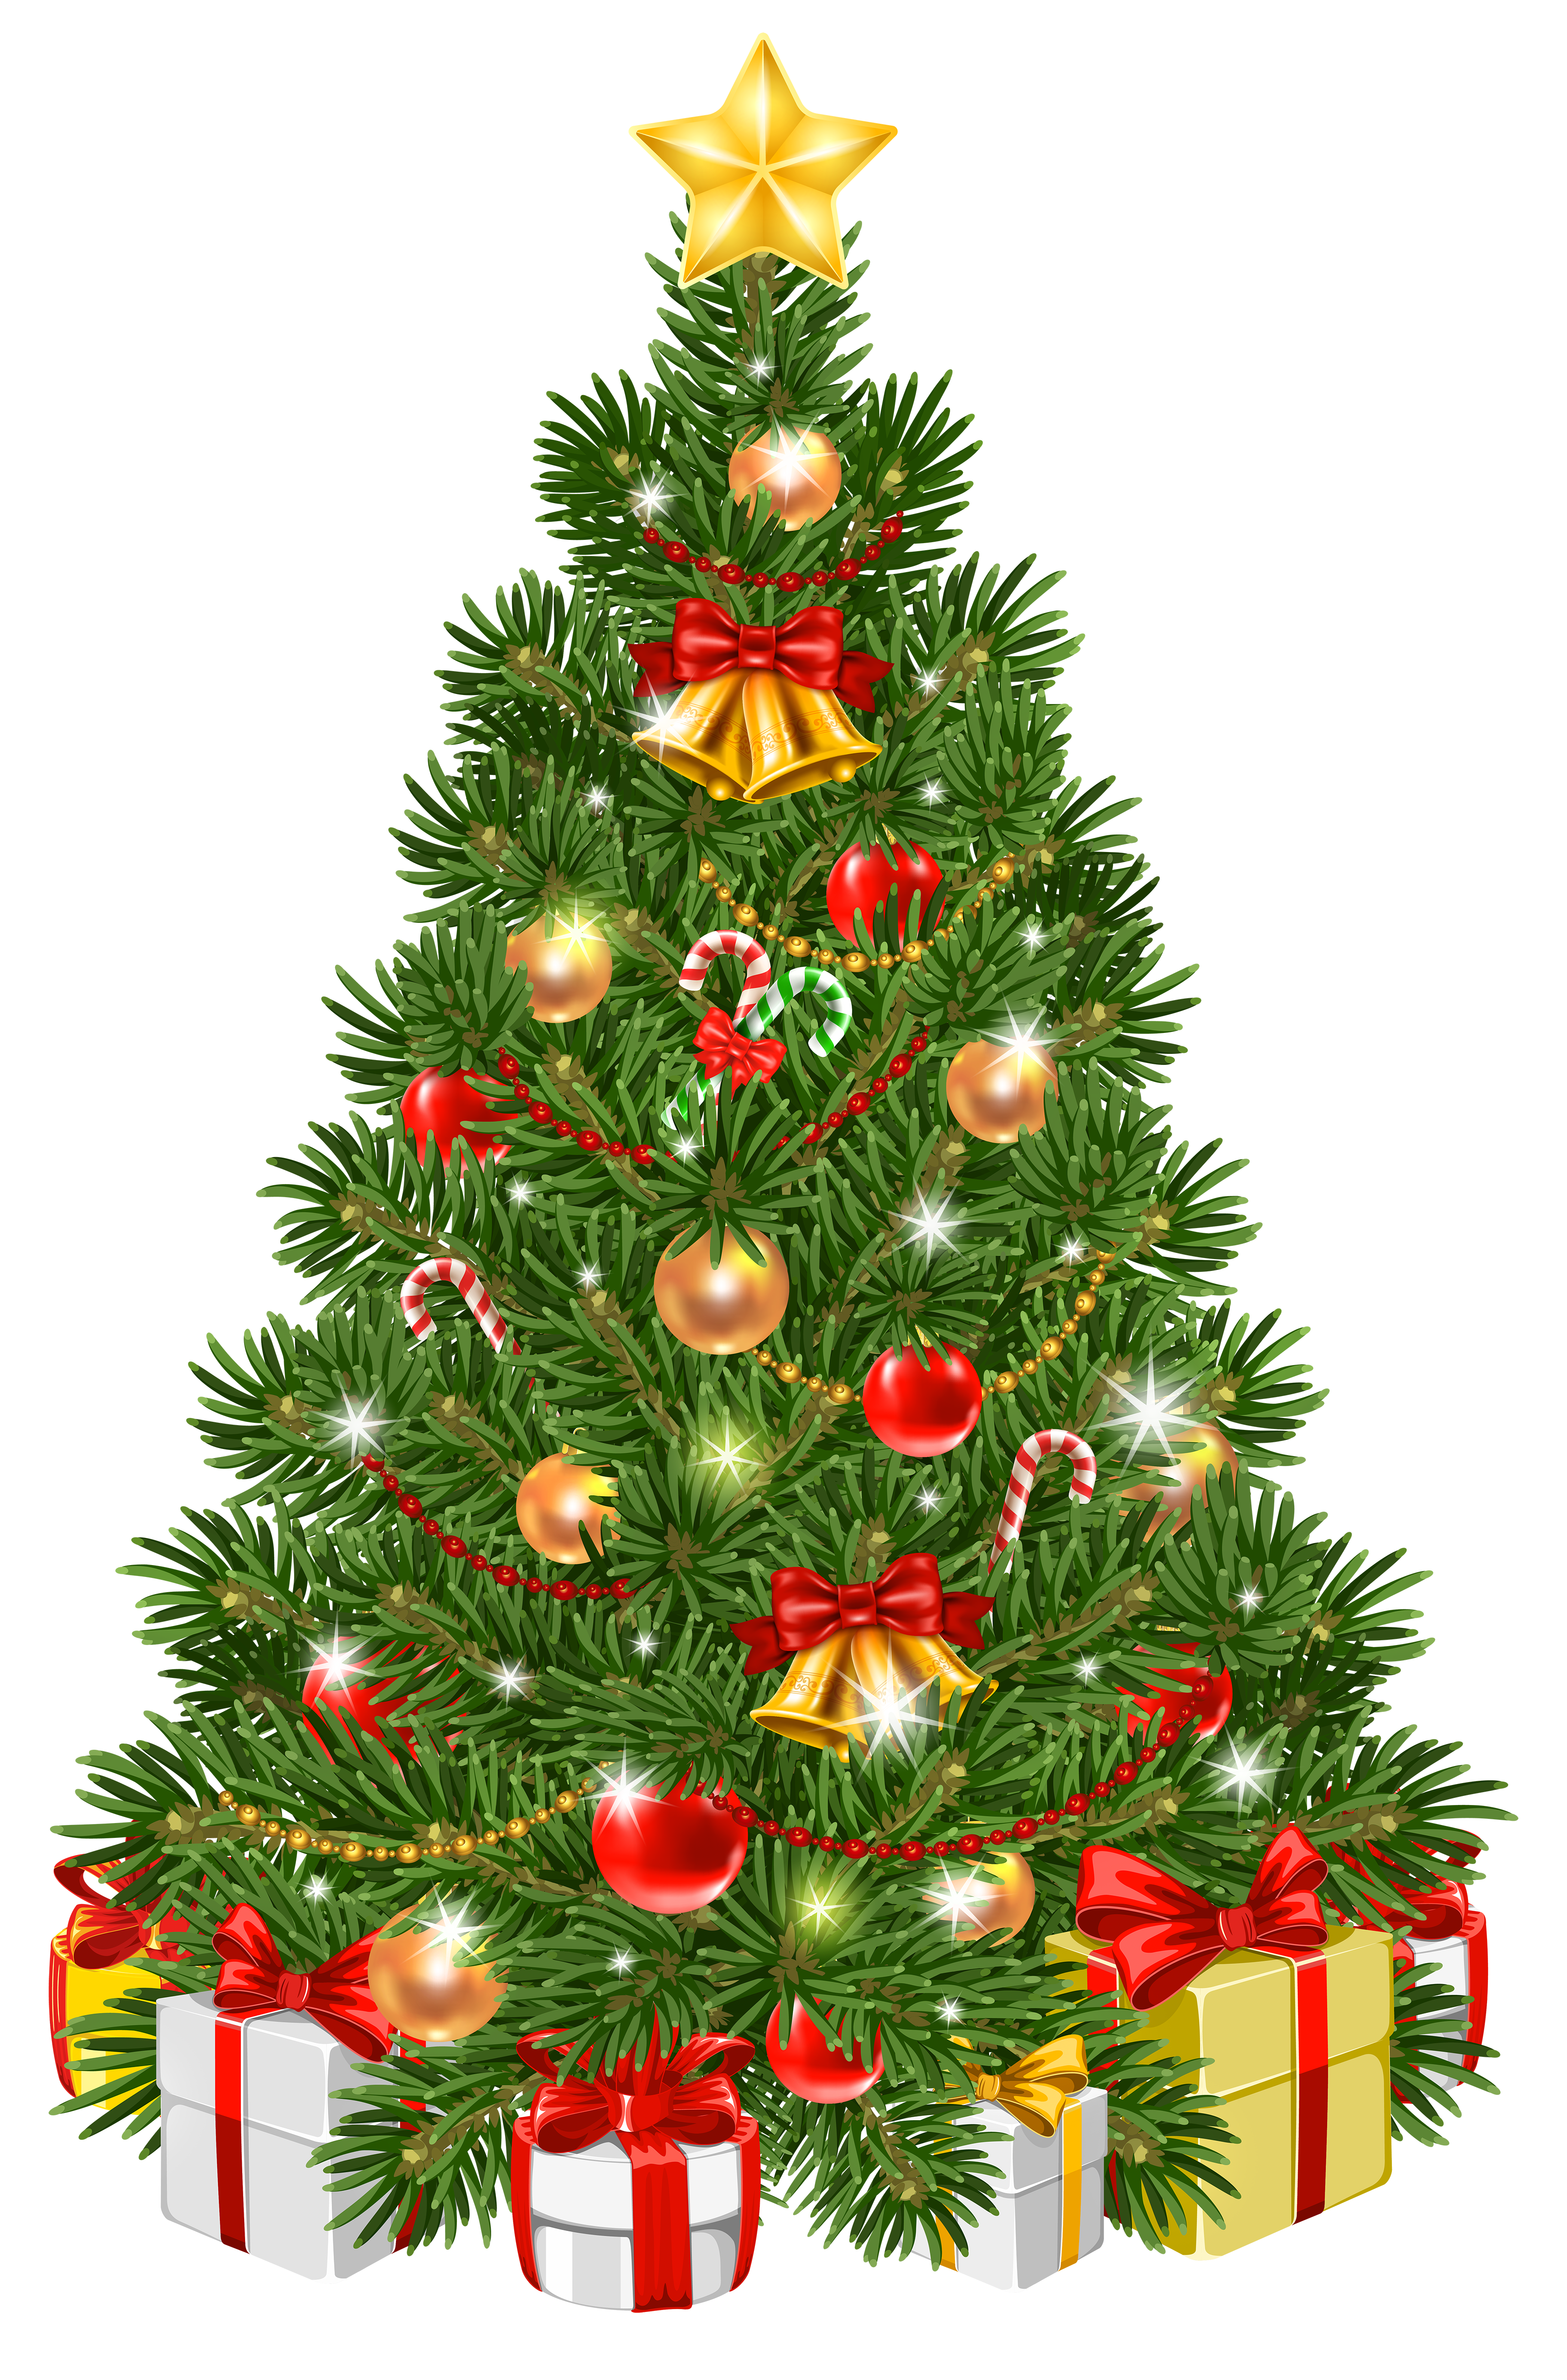 Christmas Tree clipart decorative Art Transparent Christmas View Decorated